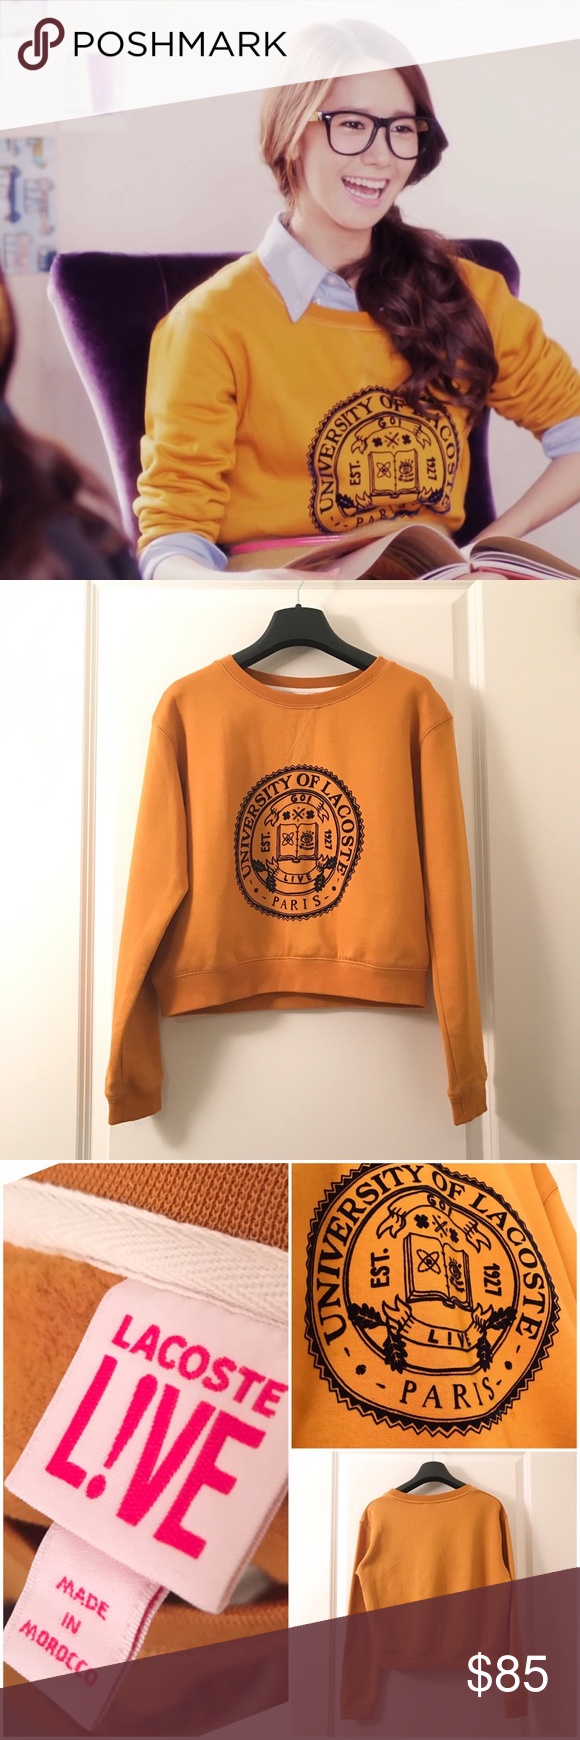 Lacoste college yellow mustard crop sweatshirt As worn by Yoona from Girl's generation. Slim fit. New without tag. Never wore never washed. Lacoste Tops Sweatshirts & Hoodies